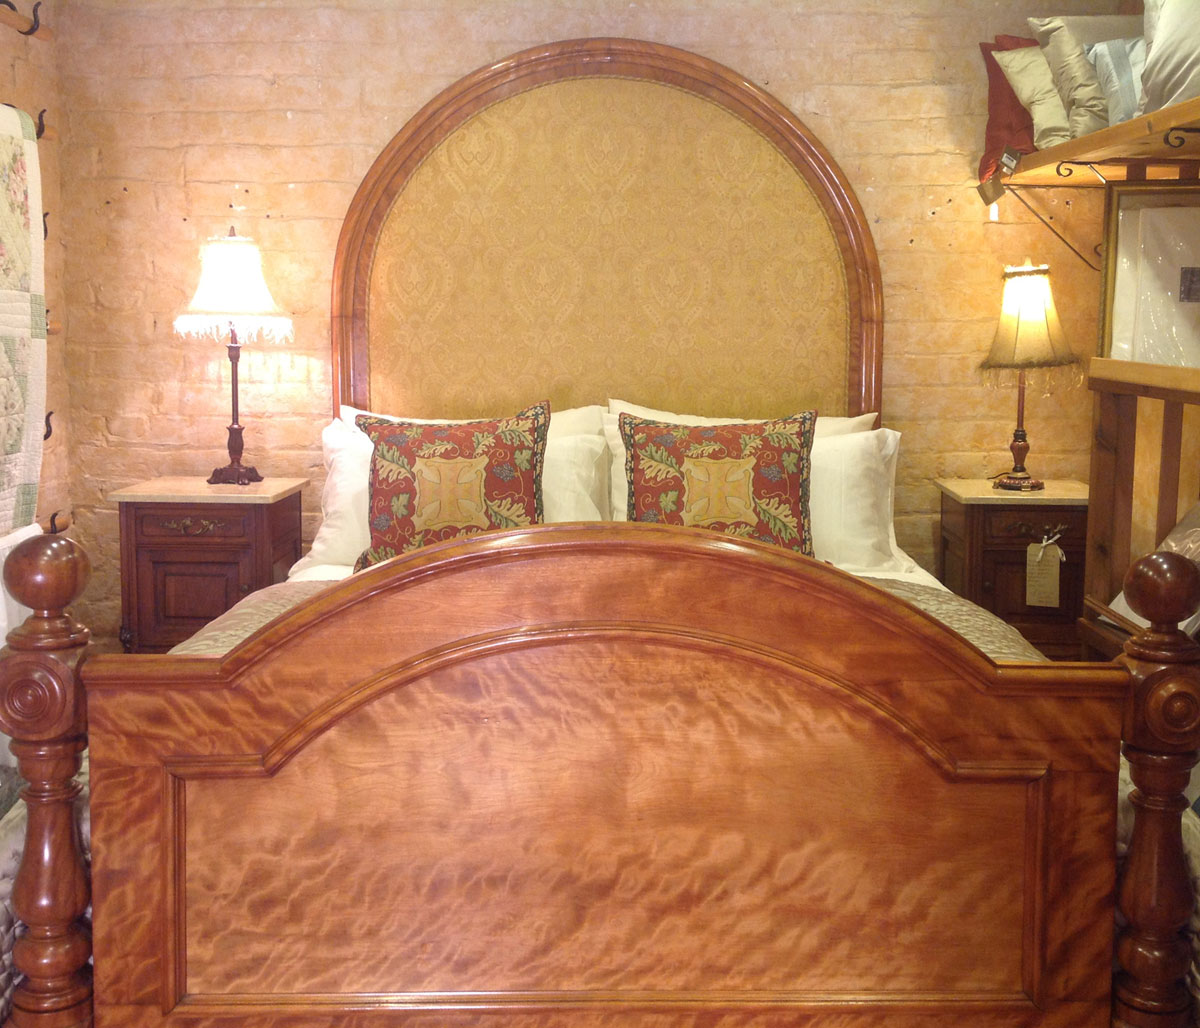 Upholstered arched antique wooden bed